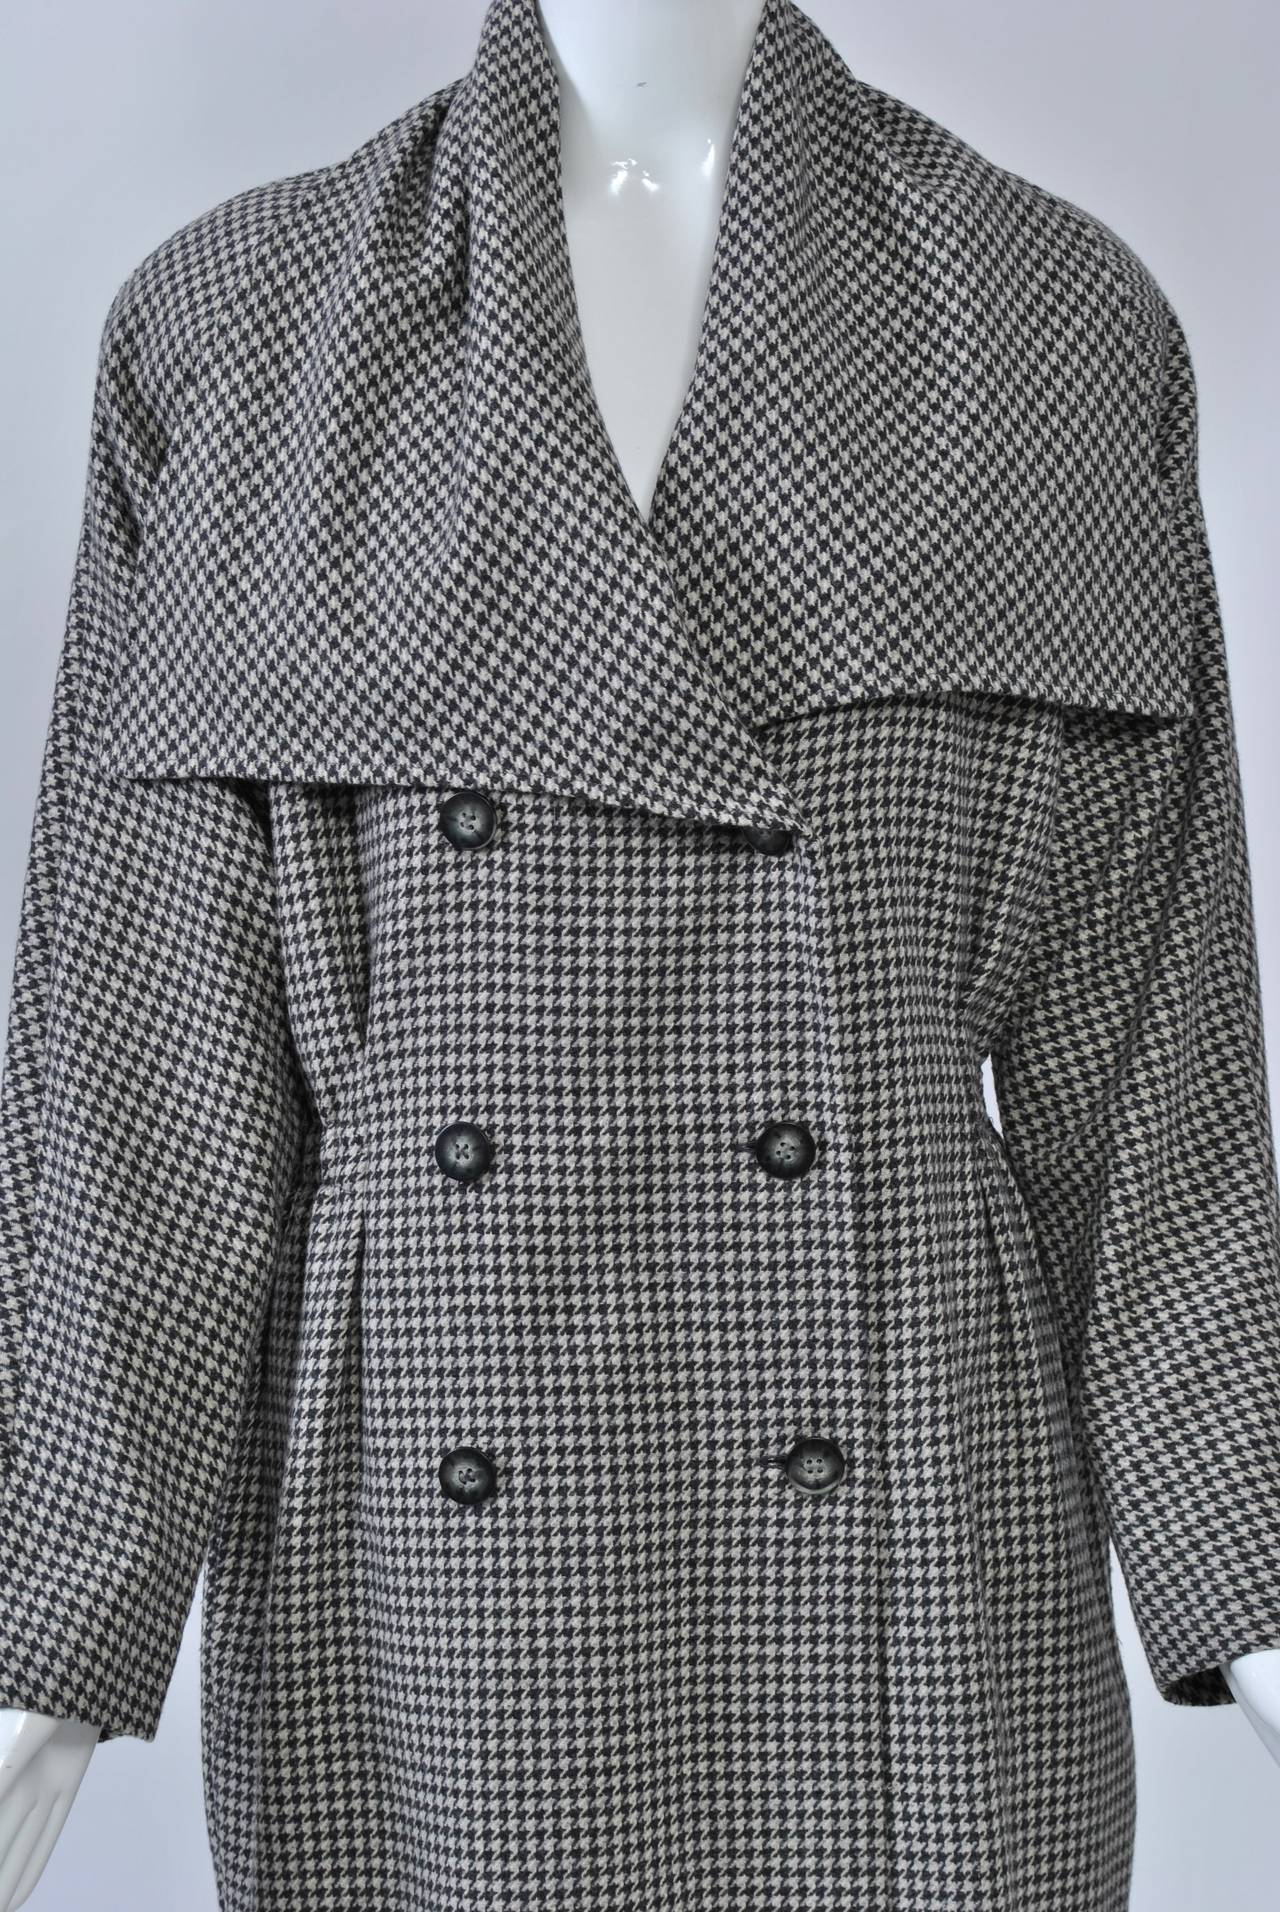 Tiktiner 1980s Coatdress For Sale 2